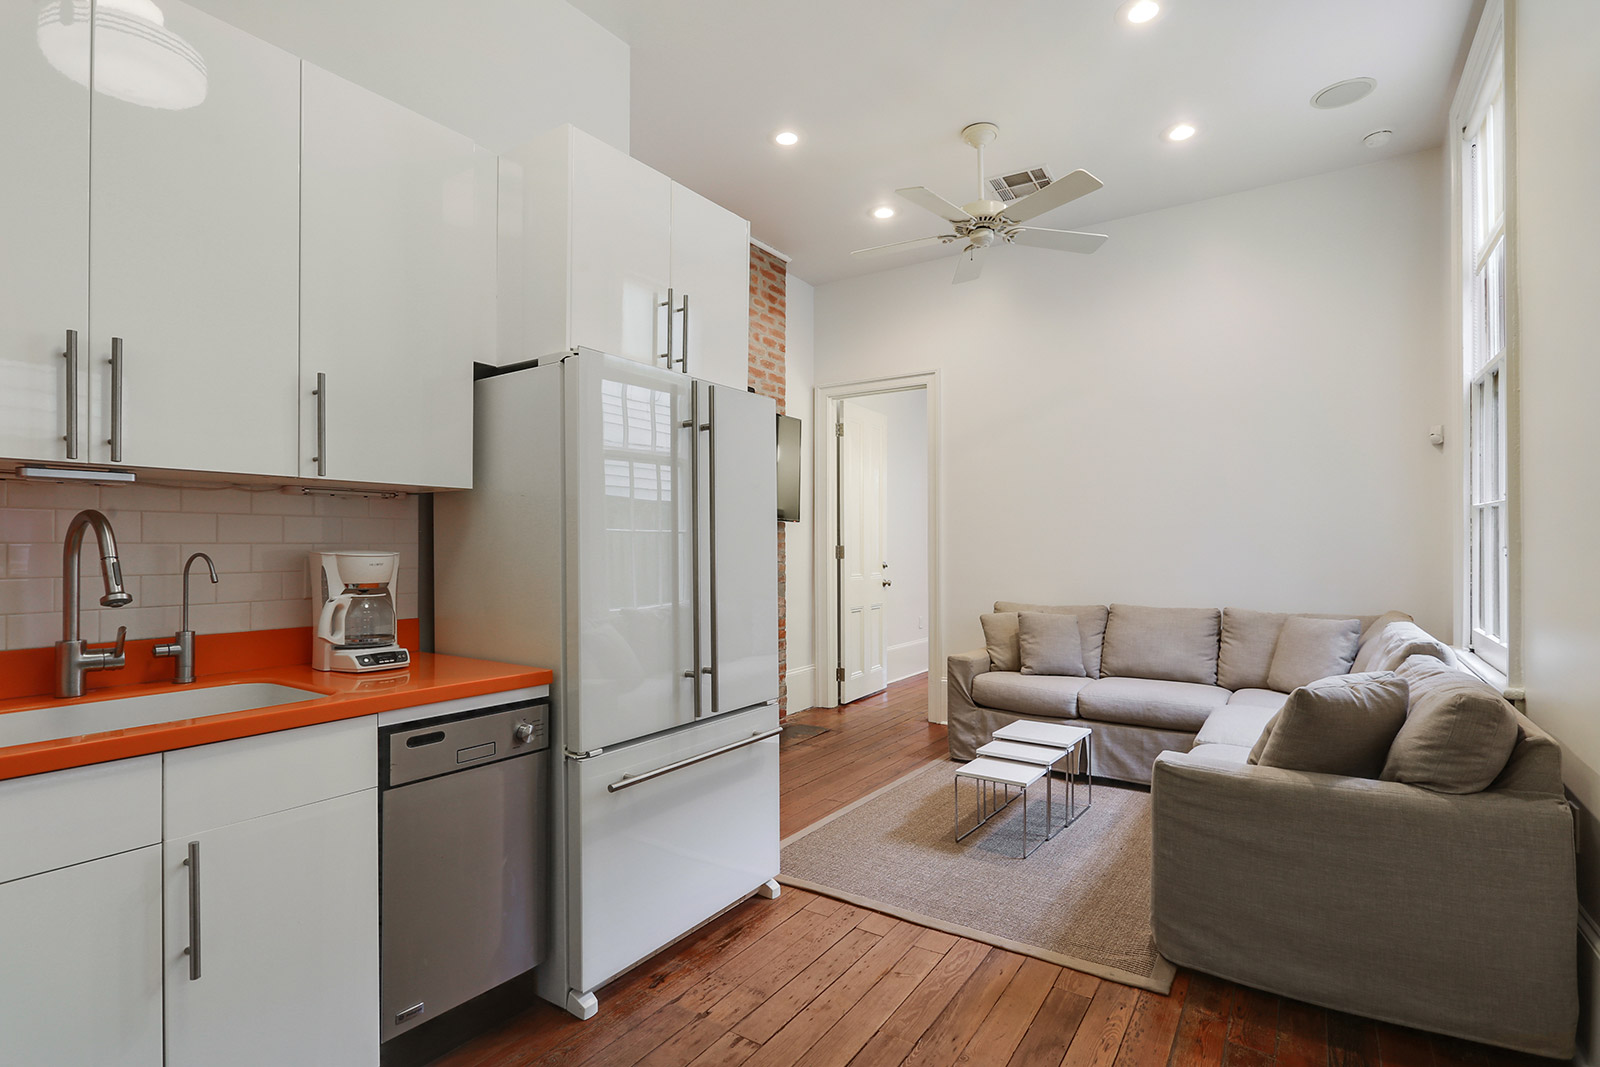 Uptown, Condo, 1 beds, 1.5 baths, $2800 per month New Orleans Rental - devie image_0